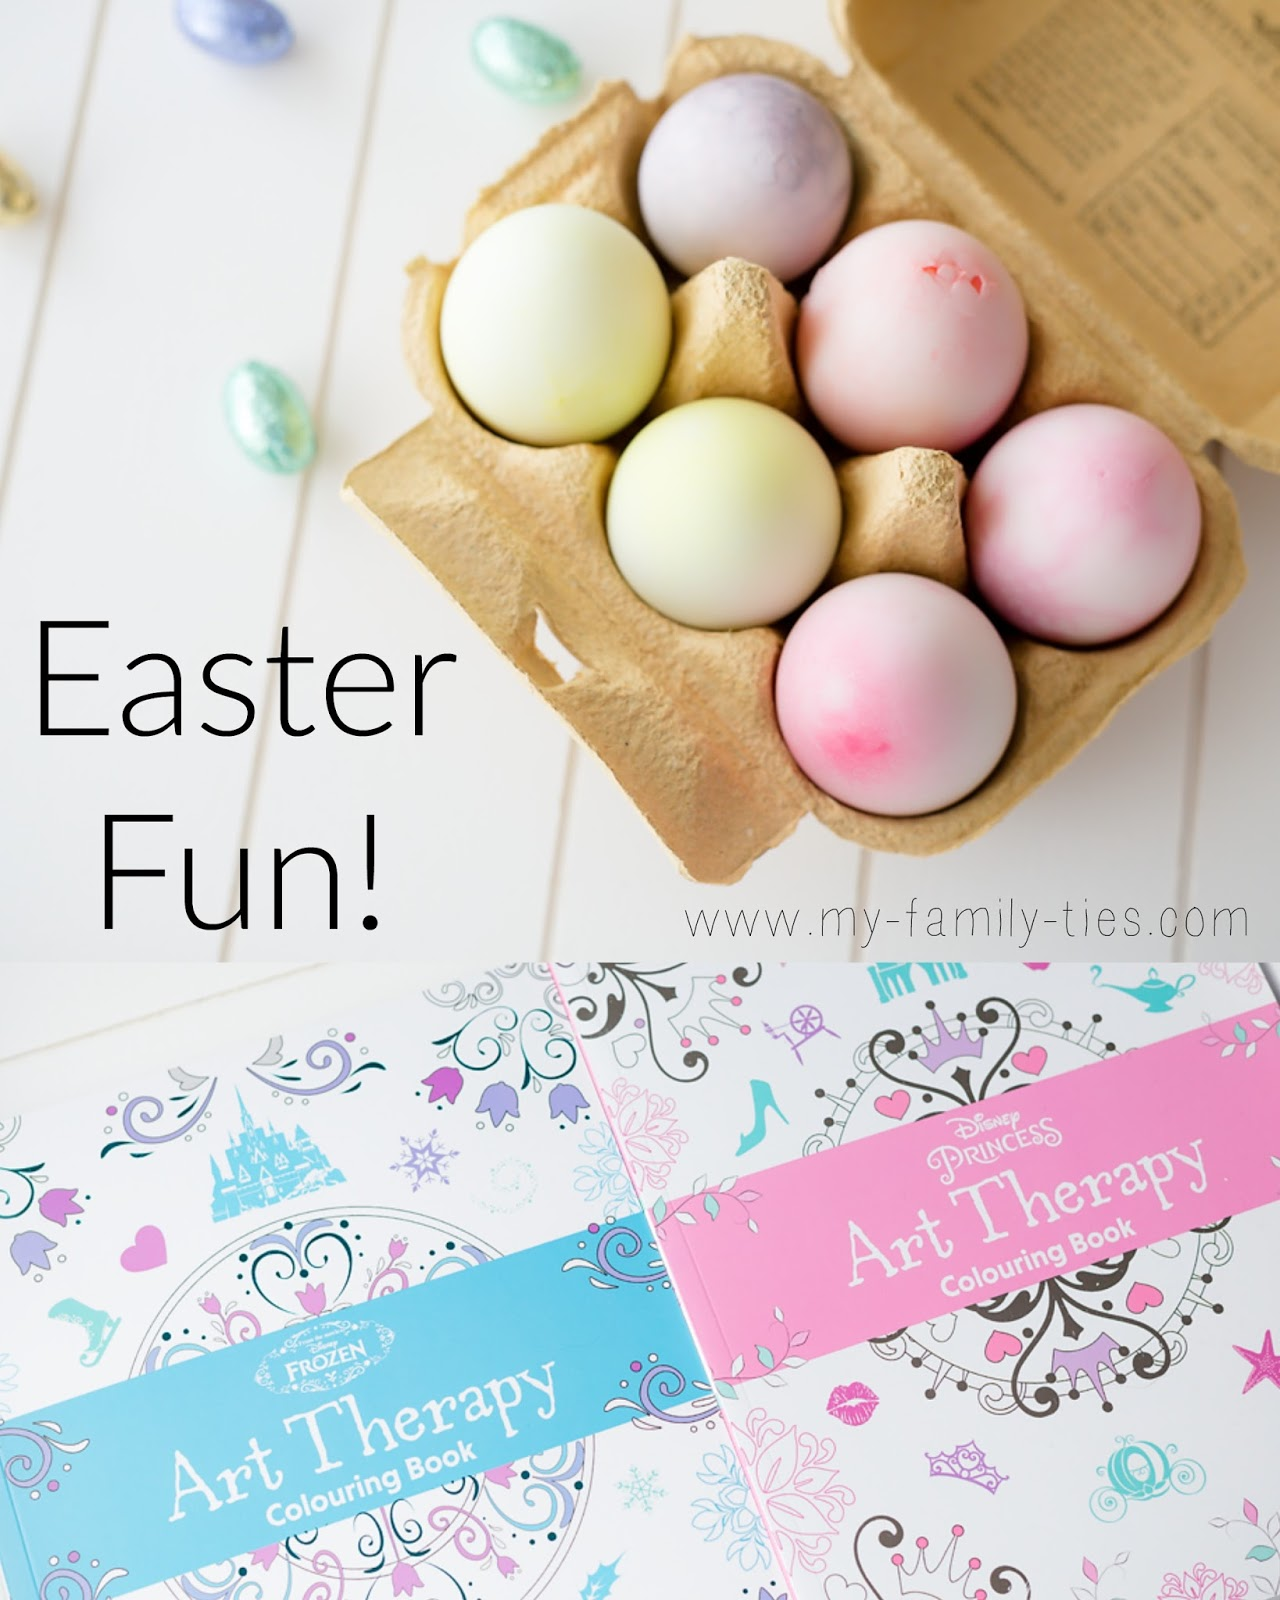 Easter-Fun-with-My-Family-Ties-Blog-Featuring-Art-Therapy-Books-From-Parragon-Books-And-Easter-Egg-Dying-With-Chicken-And-Duck-Eggs-